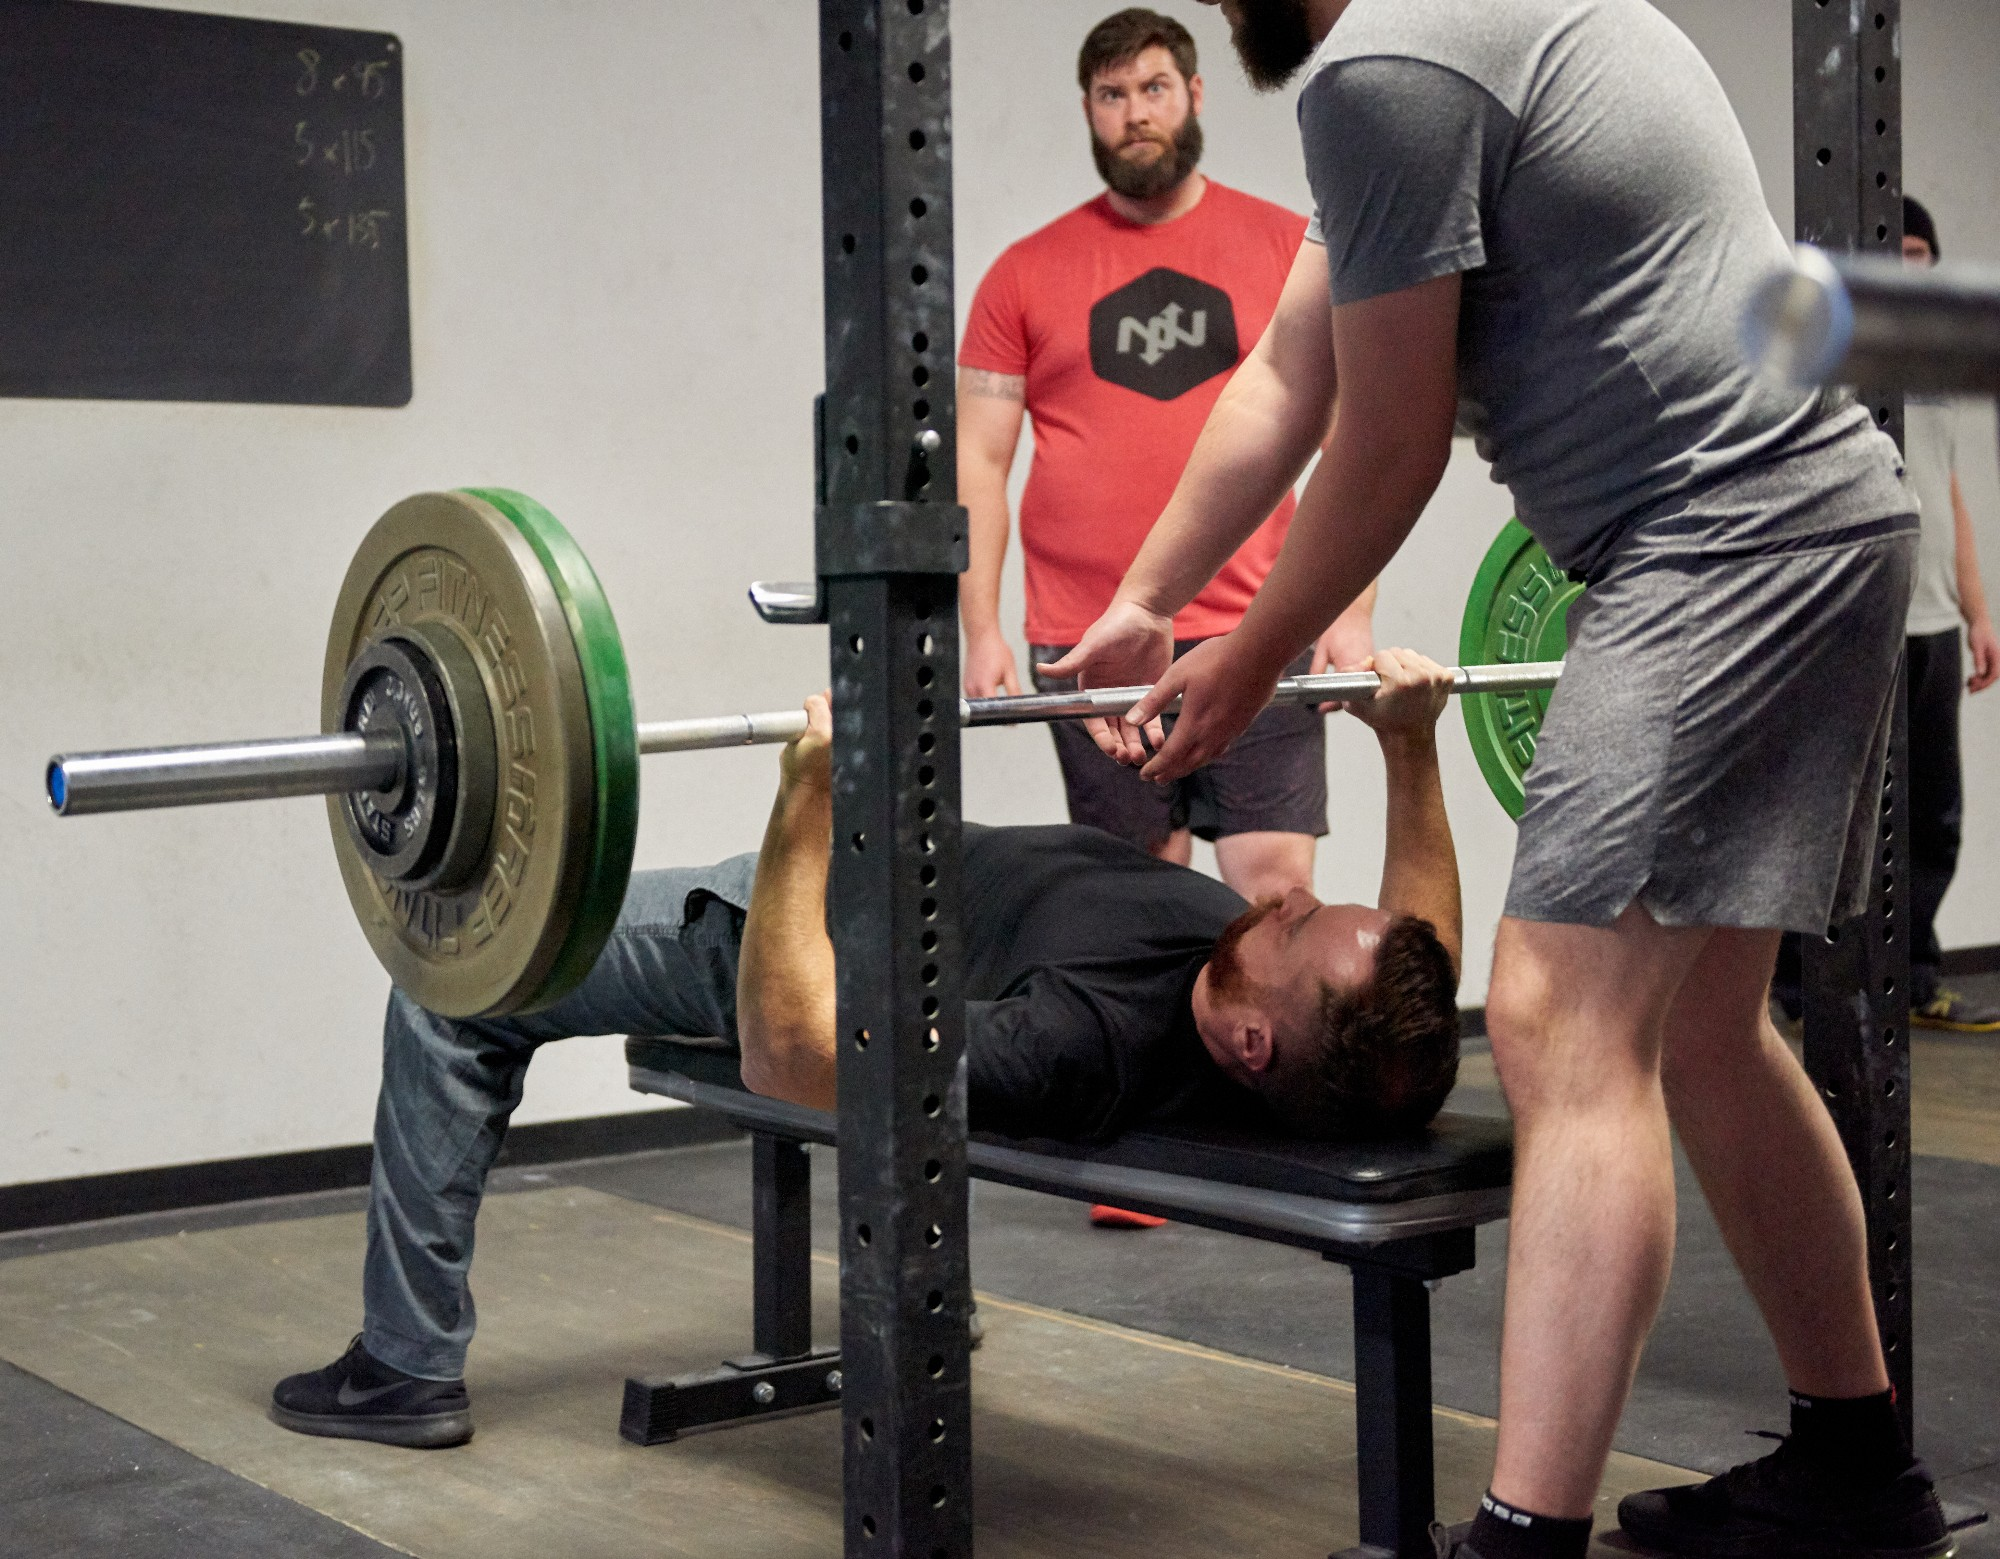 Barbell Strategy workout-Evening Session January 252018-01-25 18.27.54 - Edited.jpg